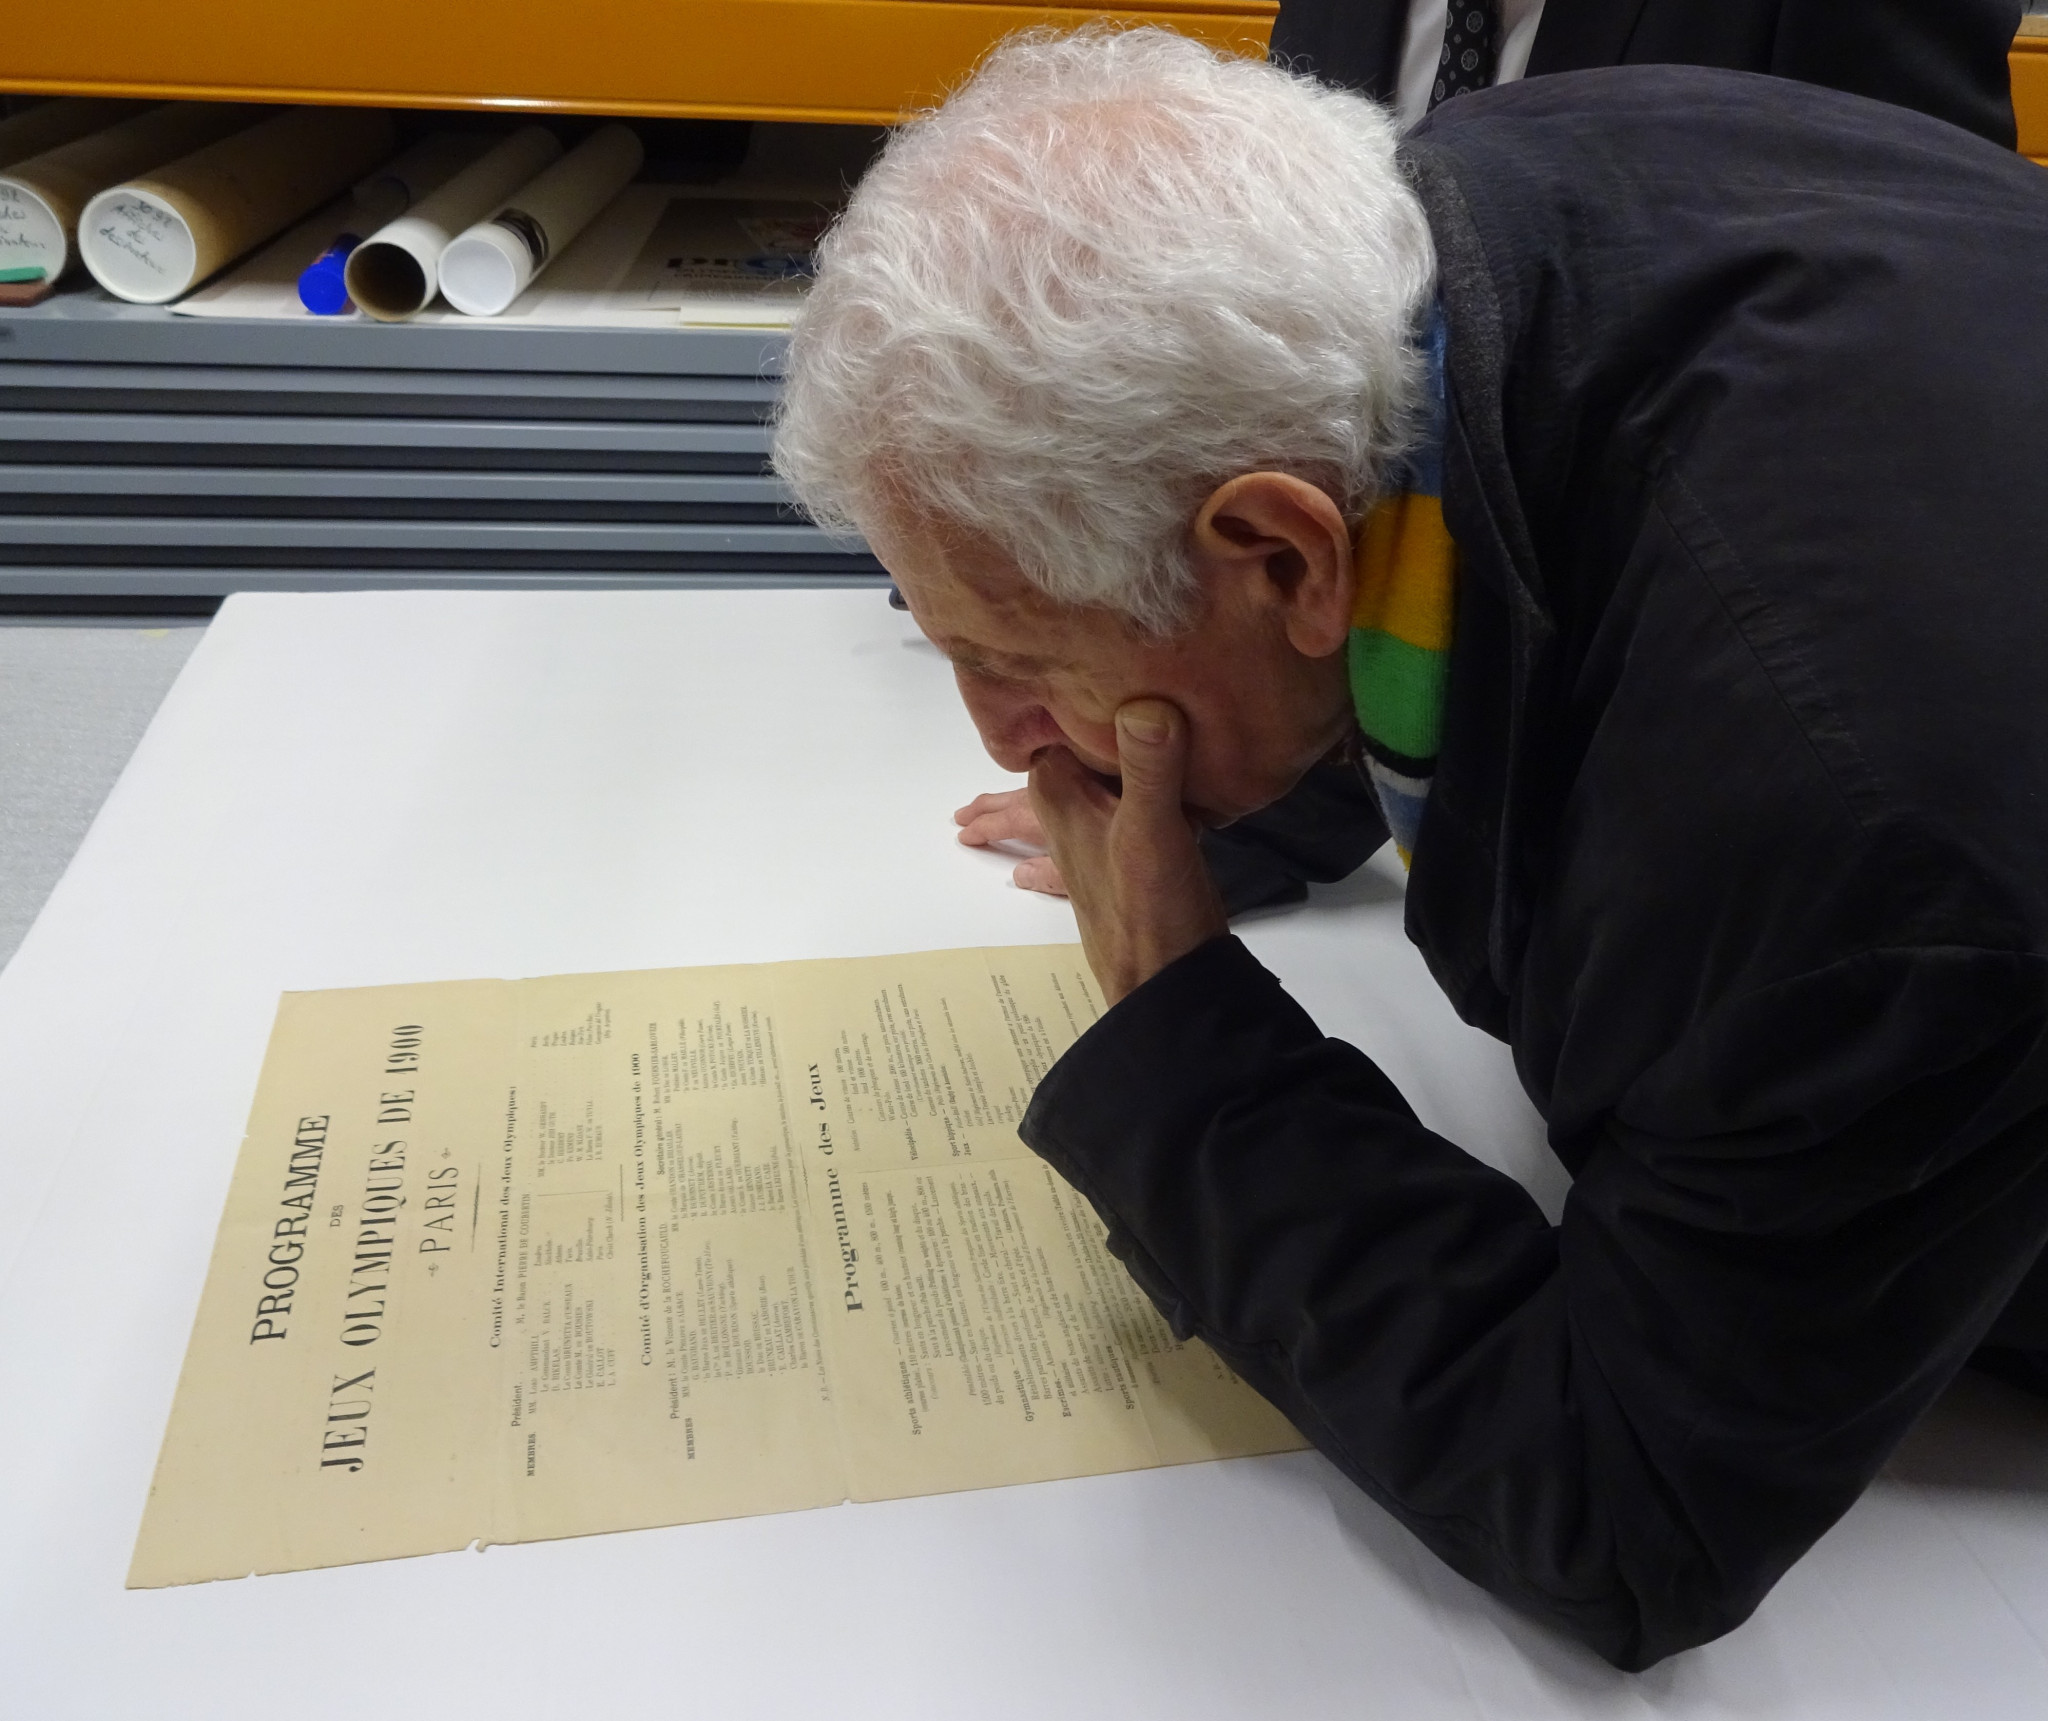 French historian Jean Durry studies the document showing that Pierre de Coubertin wanted the first modern Olympics in Paris in 1900 ©Philip Barker